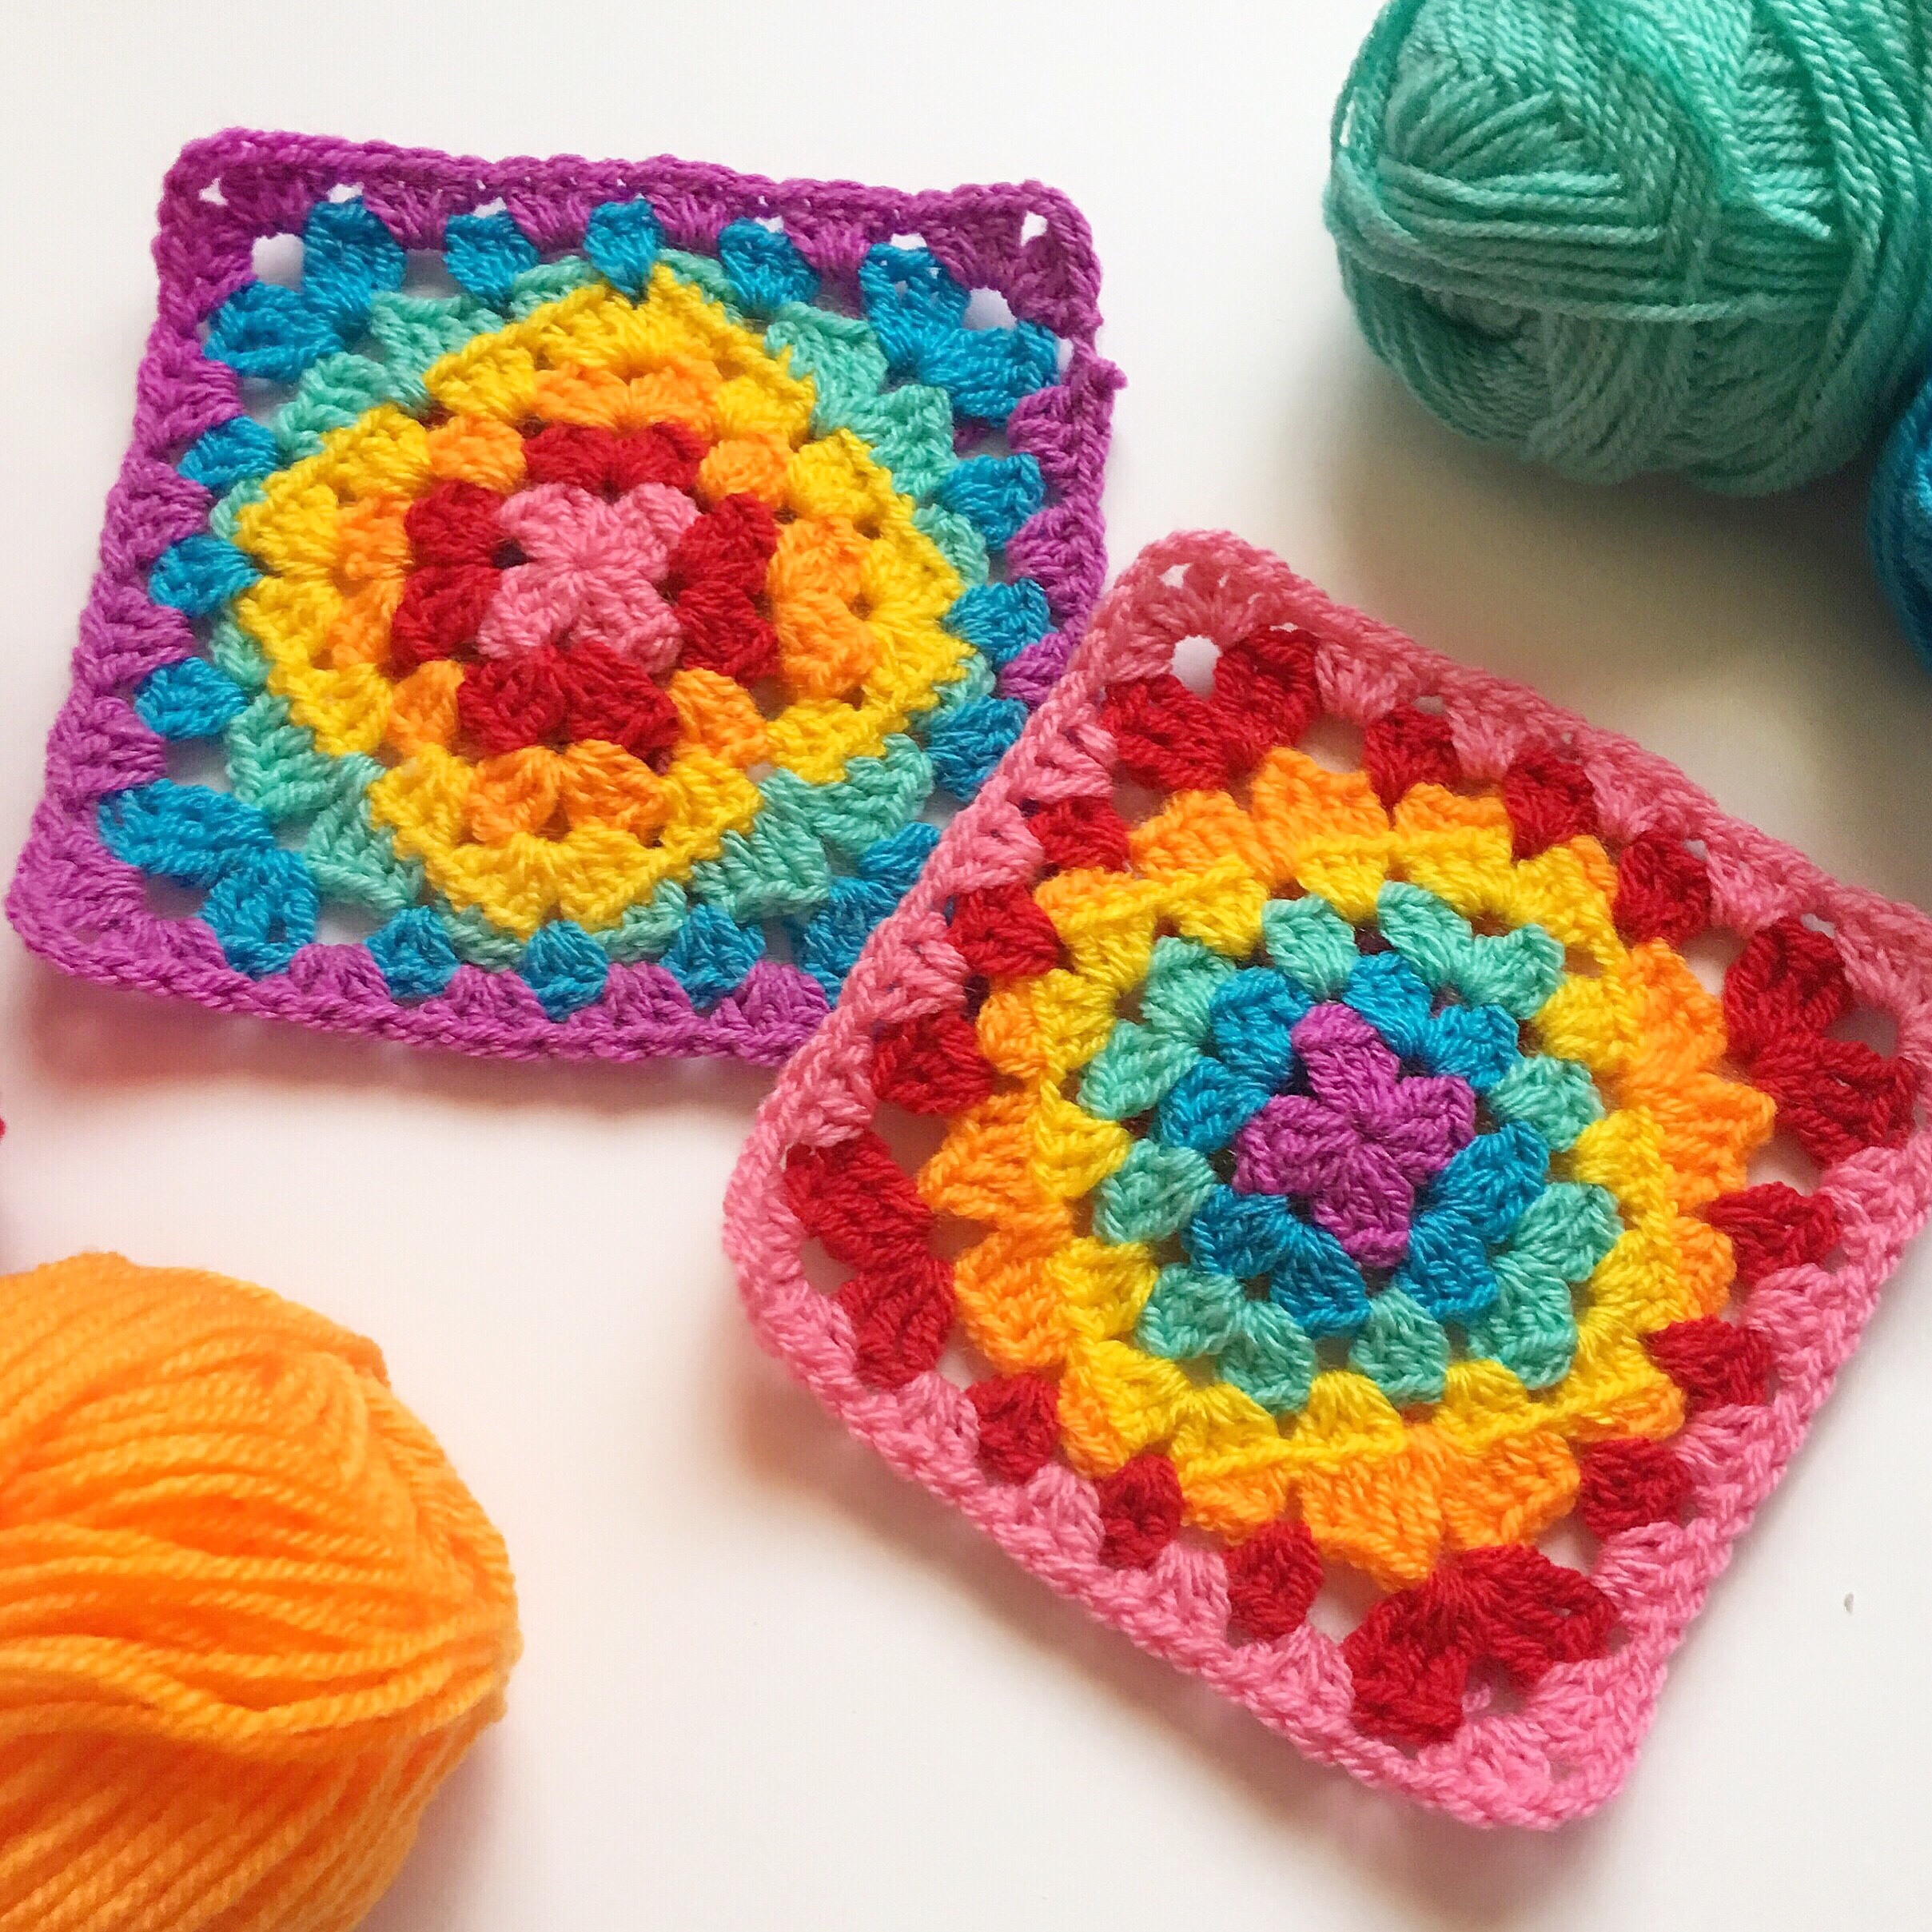 5 rainbow colourways to use in your next crochet project